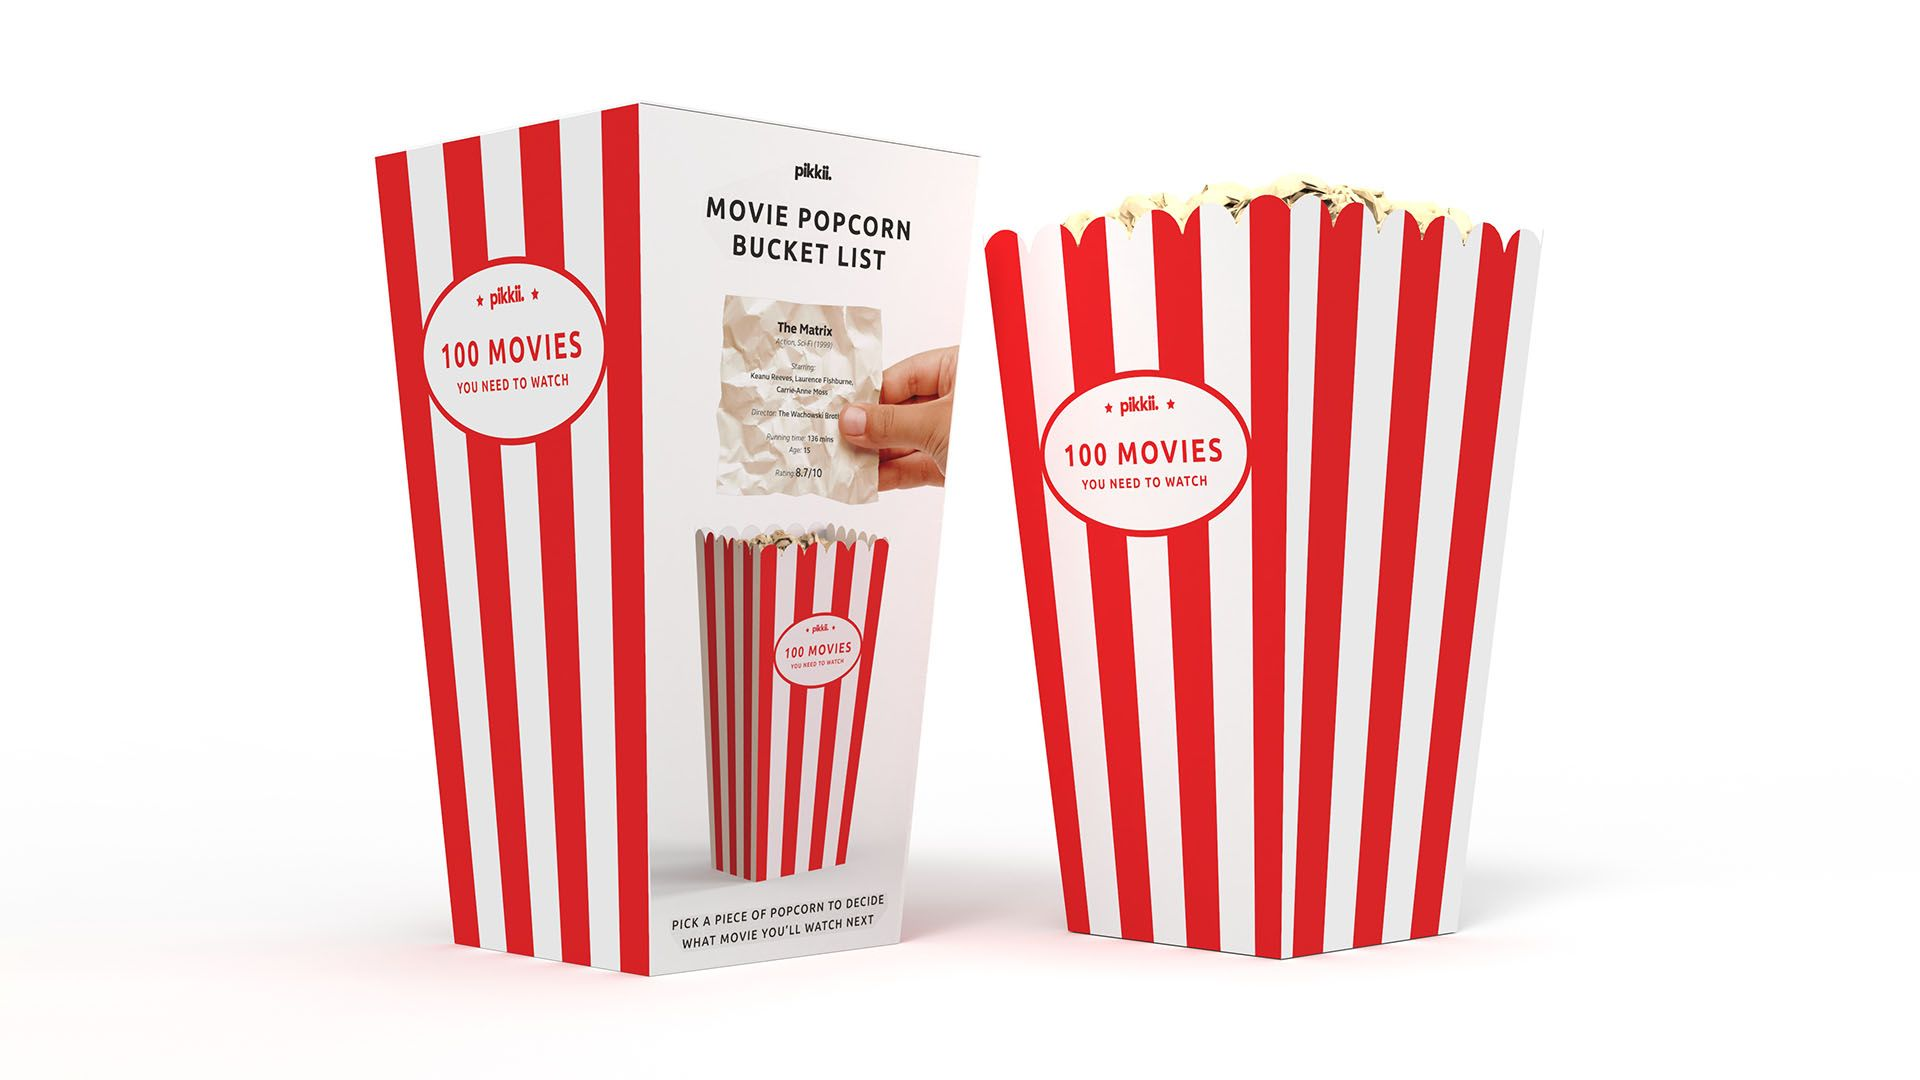 Movie Popcron Bucket List Packaging Front And Back